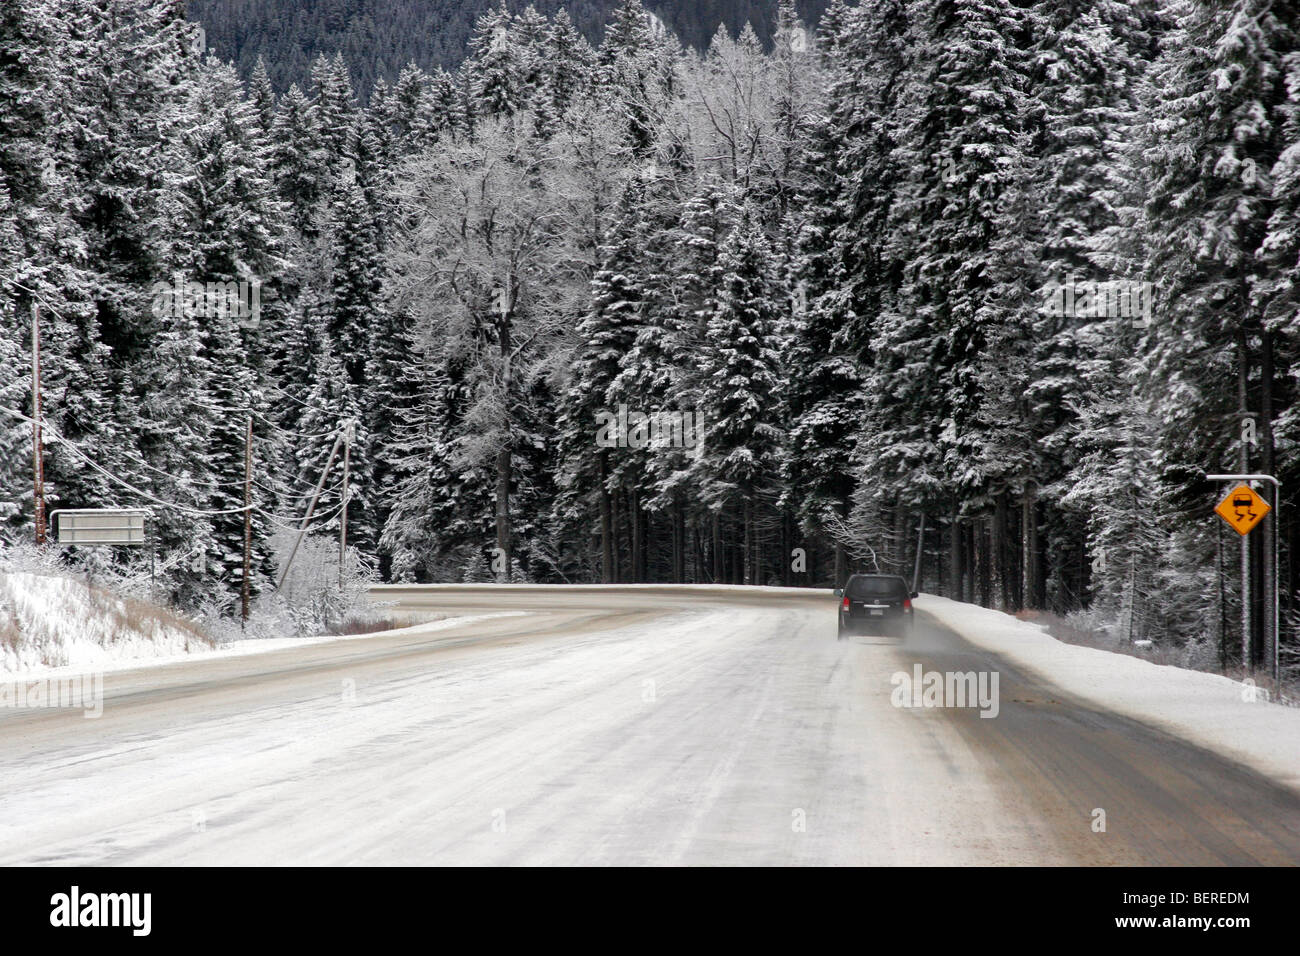 Slippery road during cold winter day in Vancouver, British Columbia Canada Stock Photo